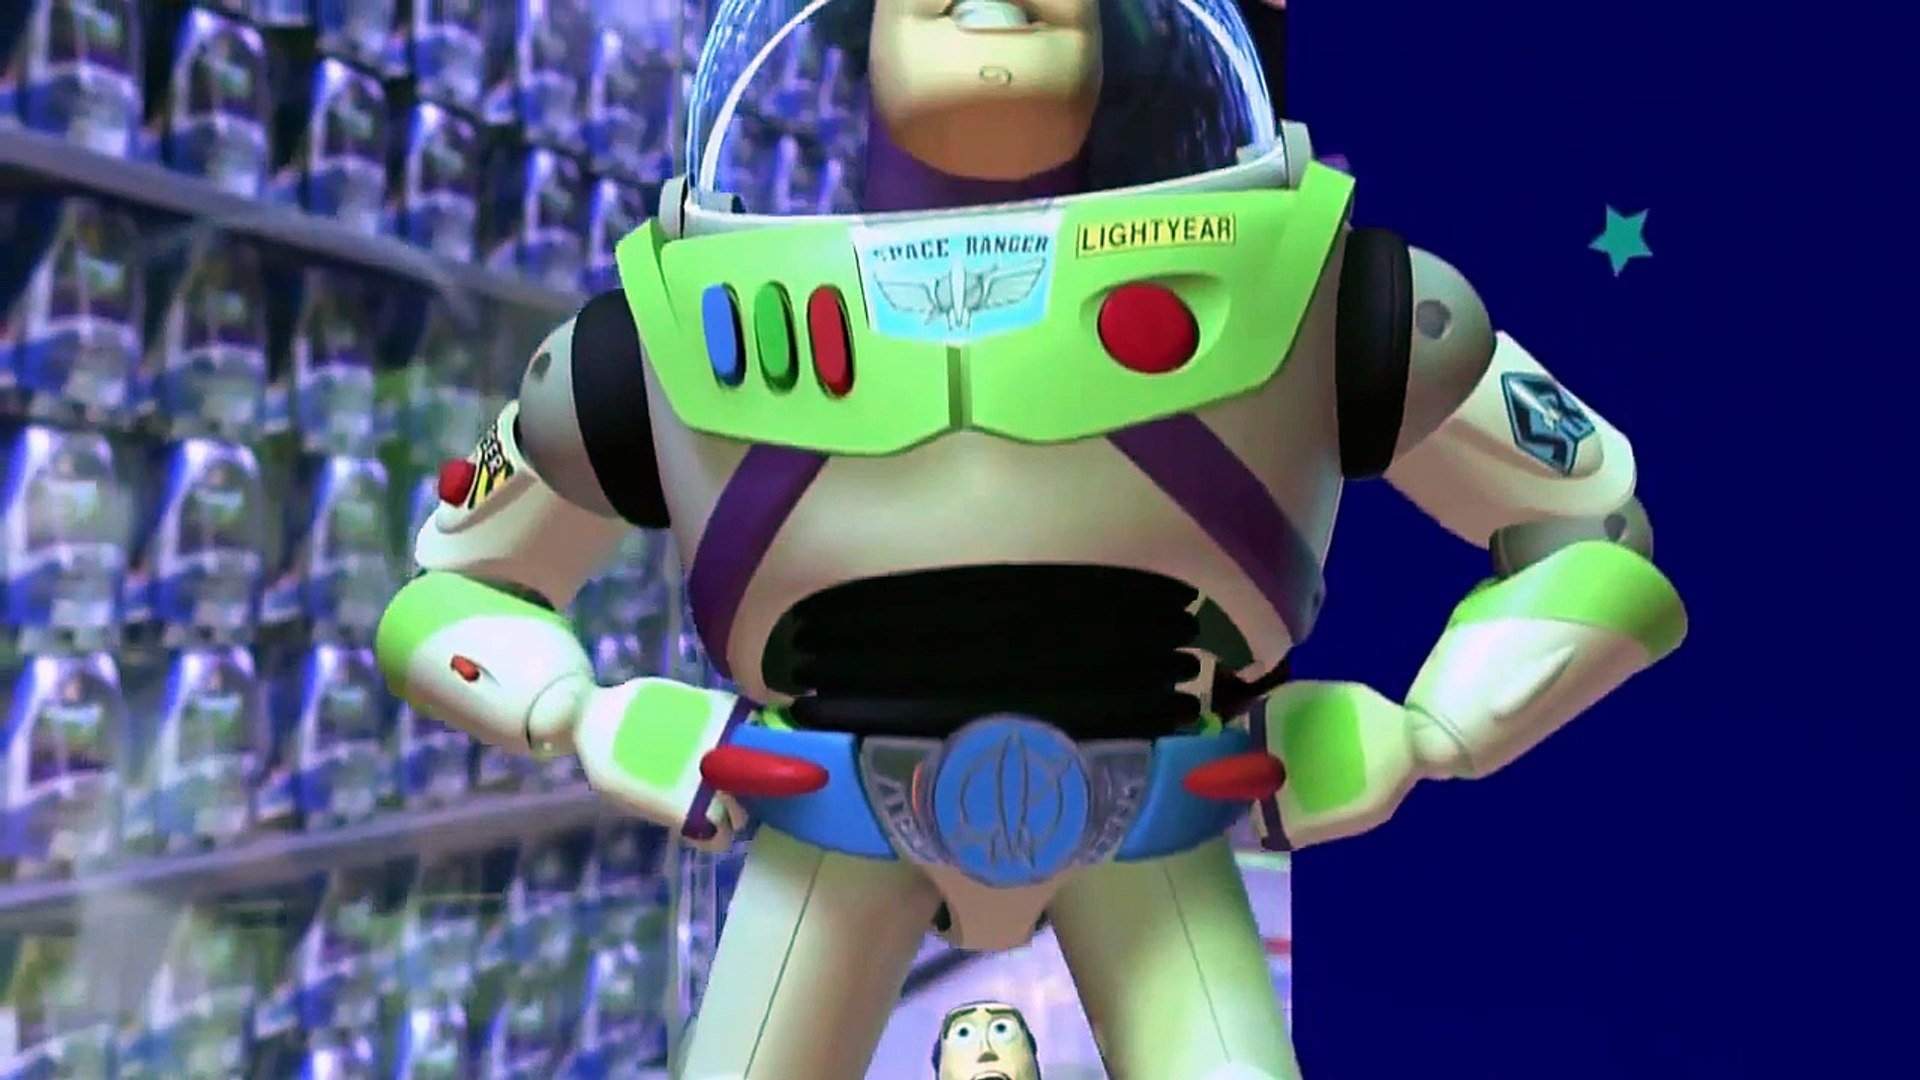 Fifty Shades Of Grey VS Toy Story! Childhood Ruined: 'Fifty Shades Of Toy Story' Will Make You Cring